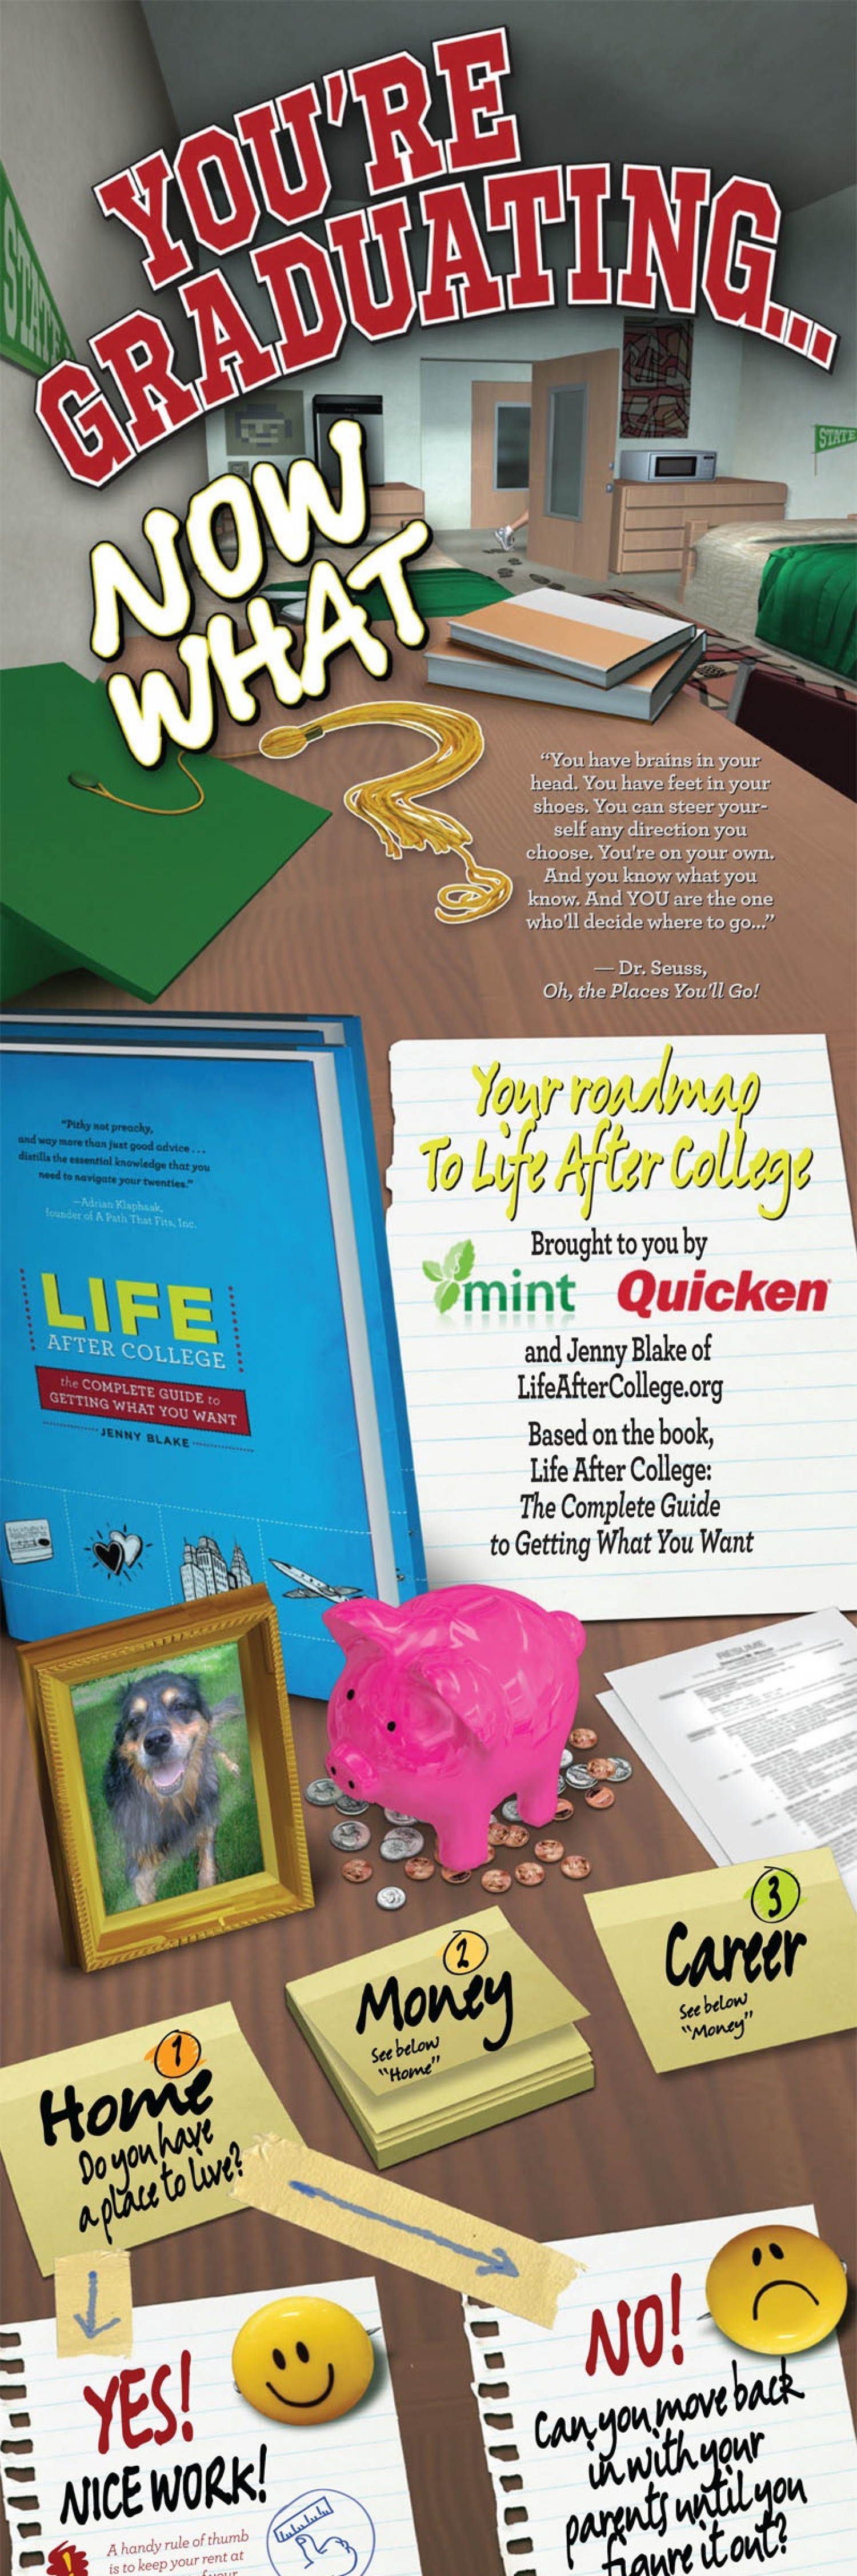 Life After College Roadmap Infographic